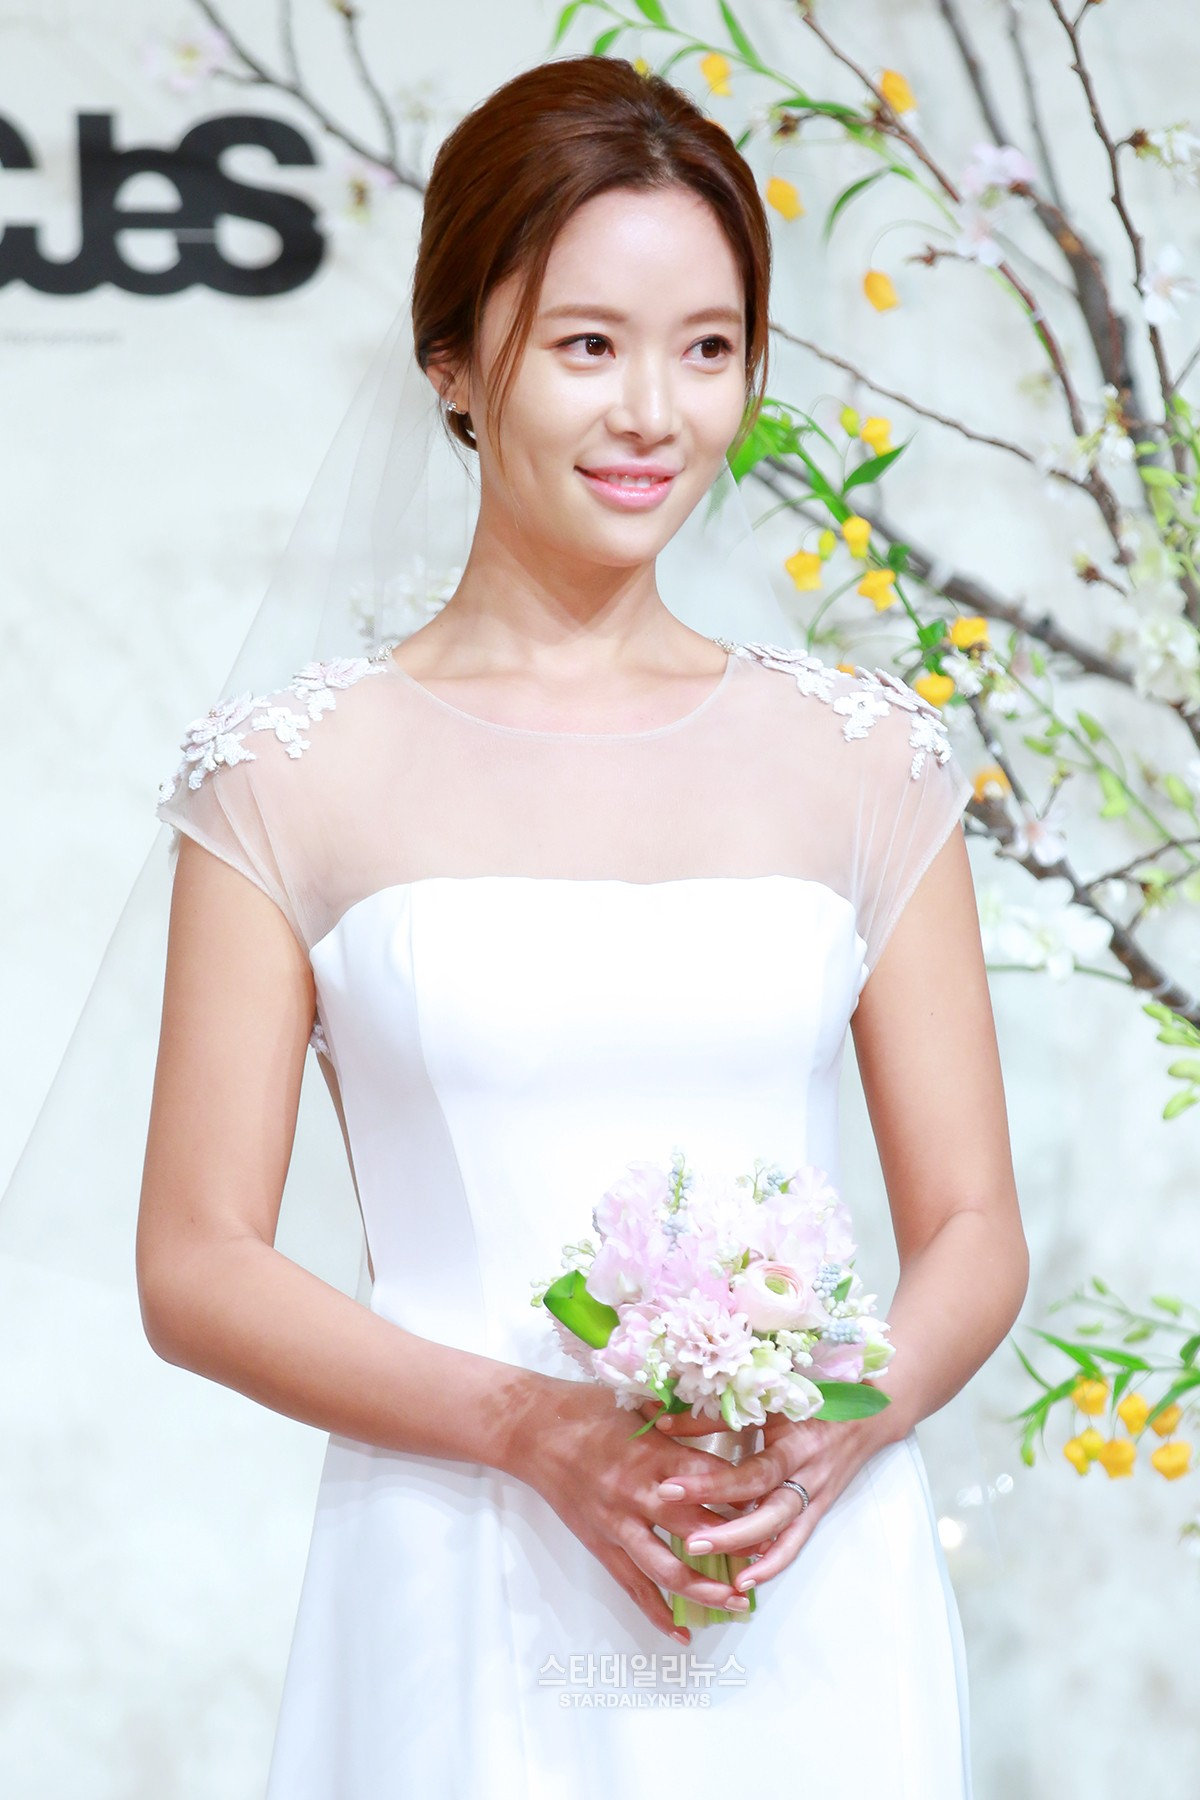 Hwang Jung Eum Ties the Knot With Pro-Golfer Fiancée